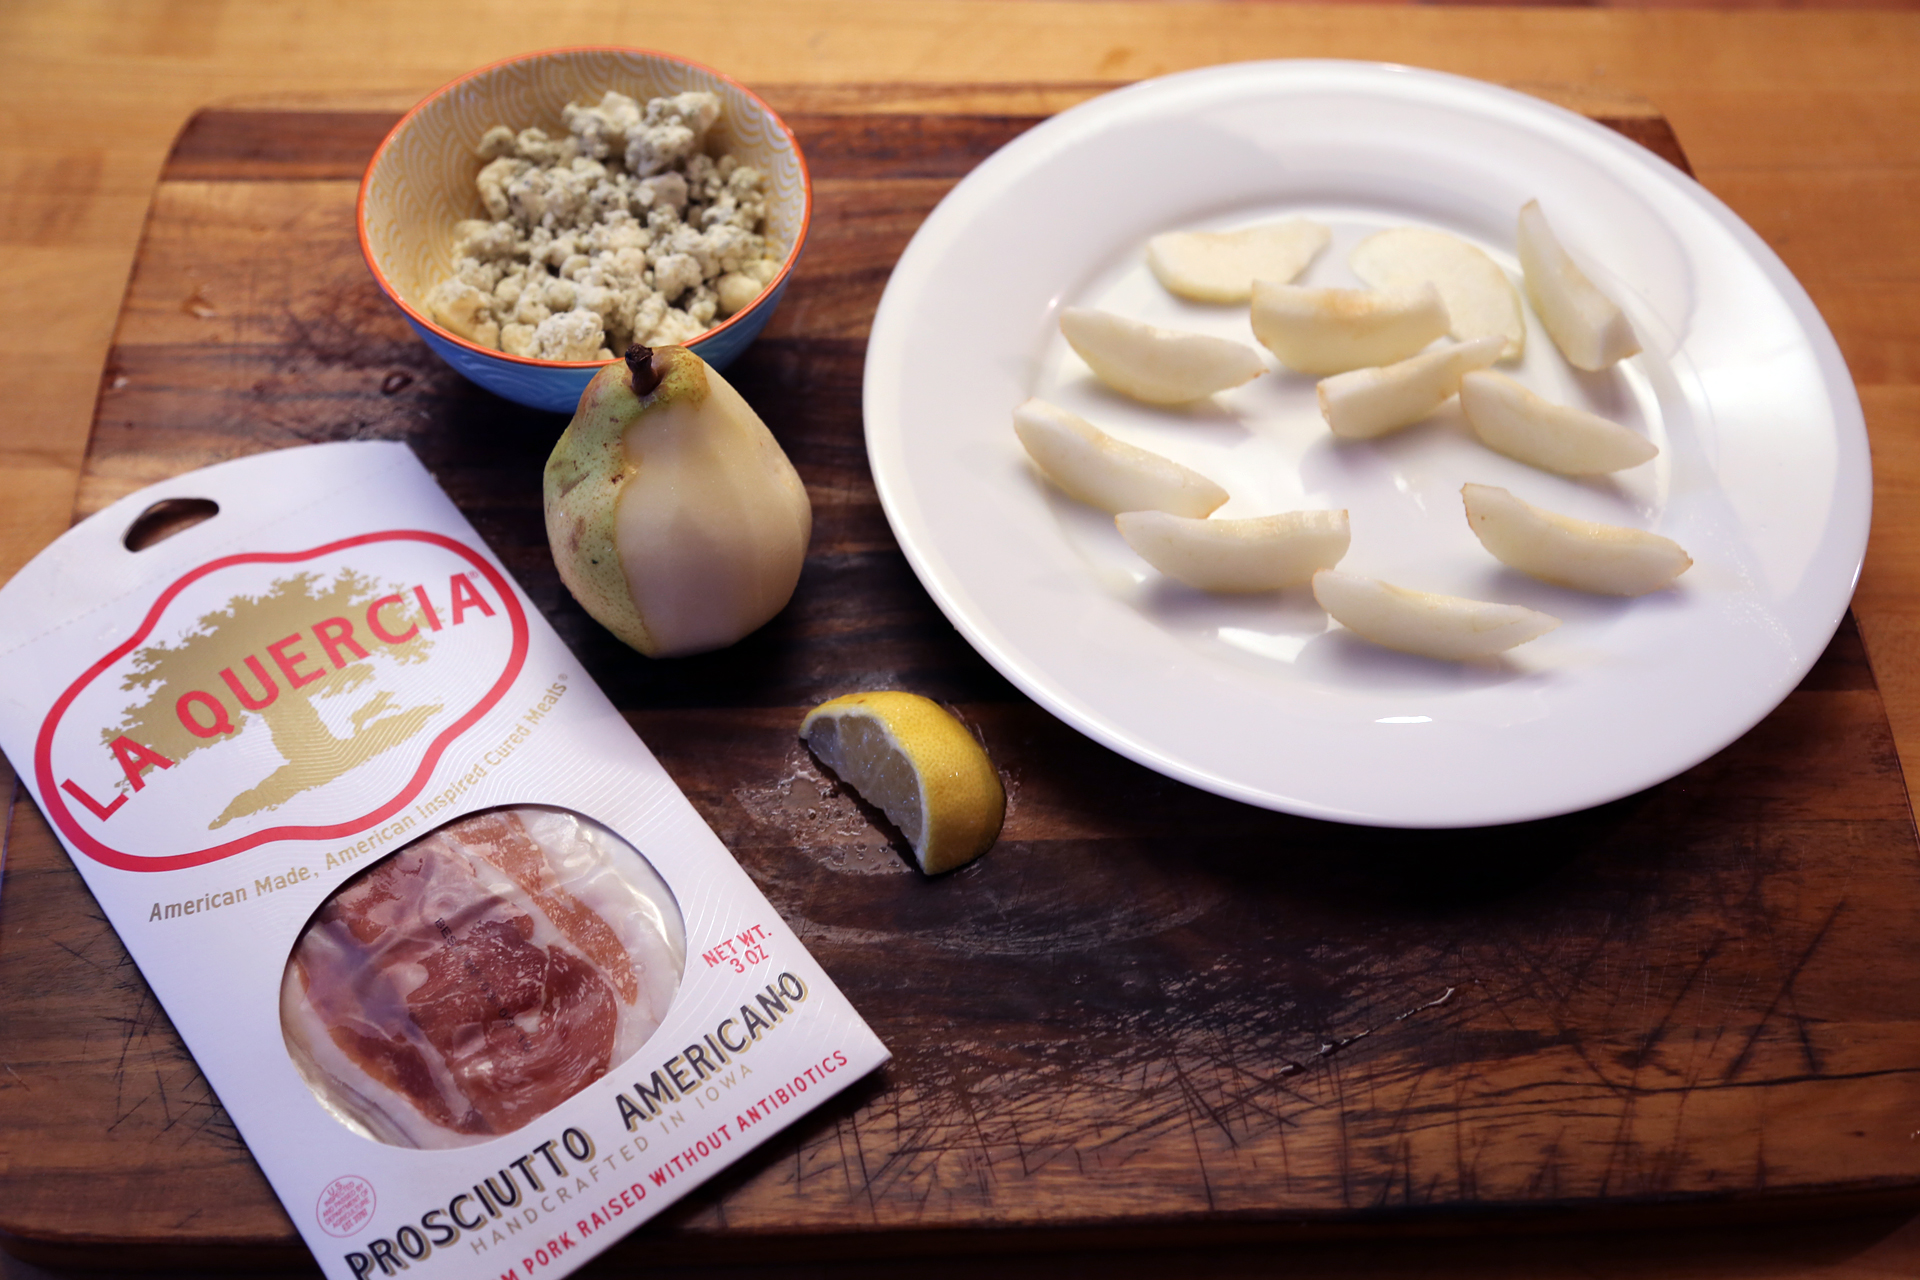 Prosciutto-Wrapped Pears with Gorgonzola ingredients